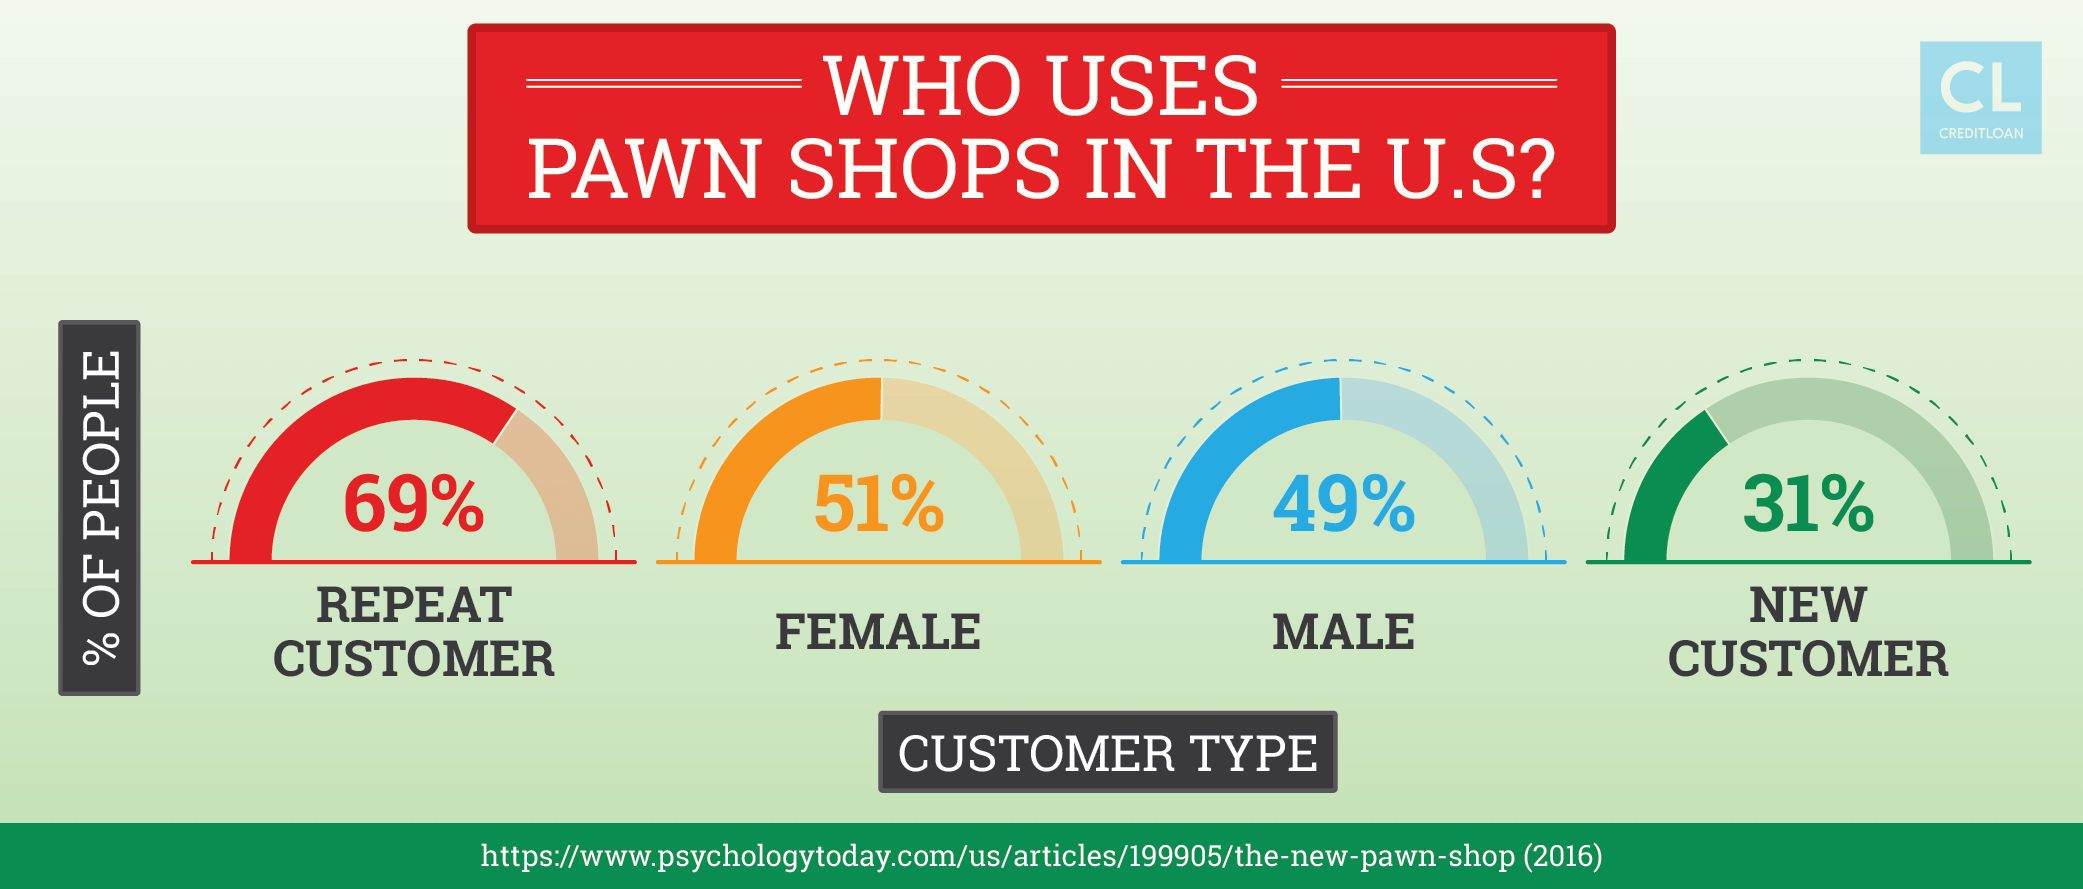 Survey: Who Uses Pawn Shops in the U.S?